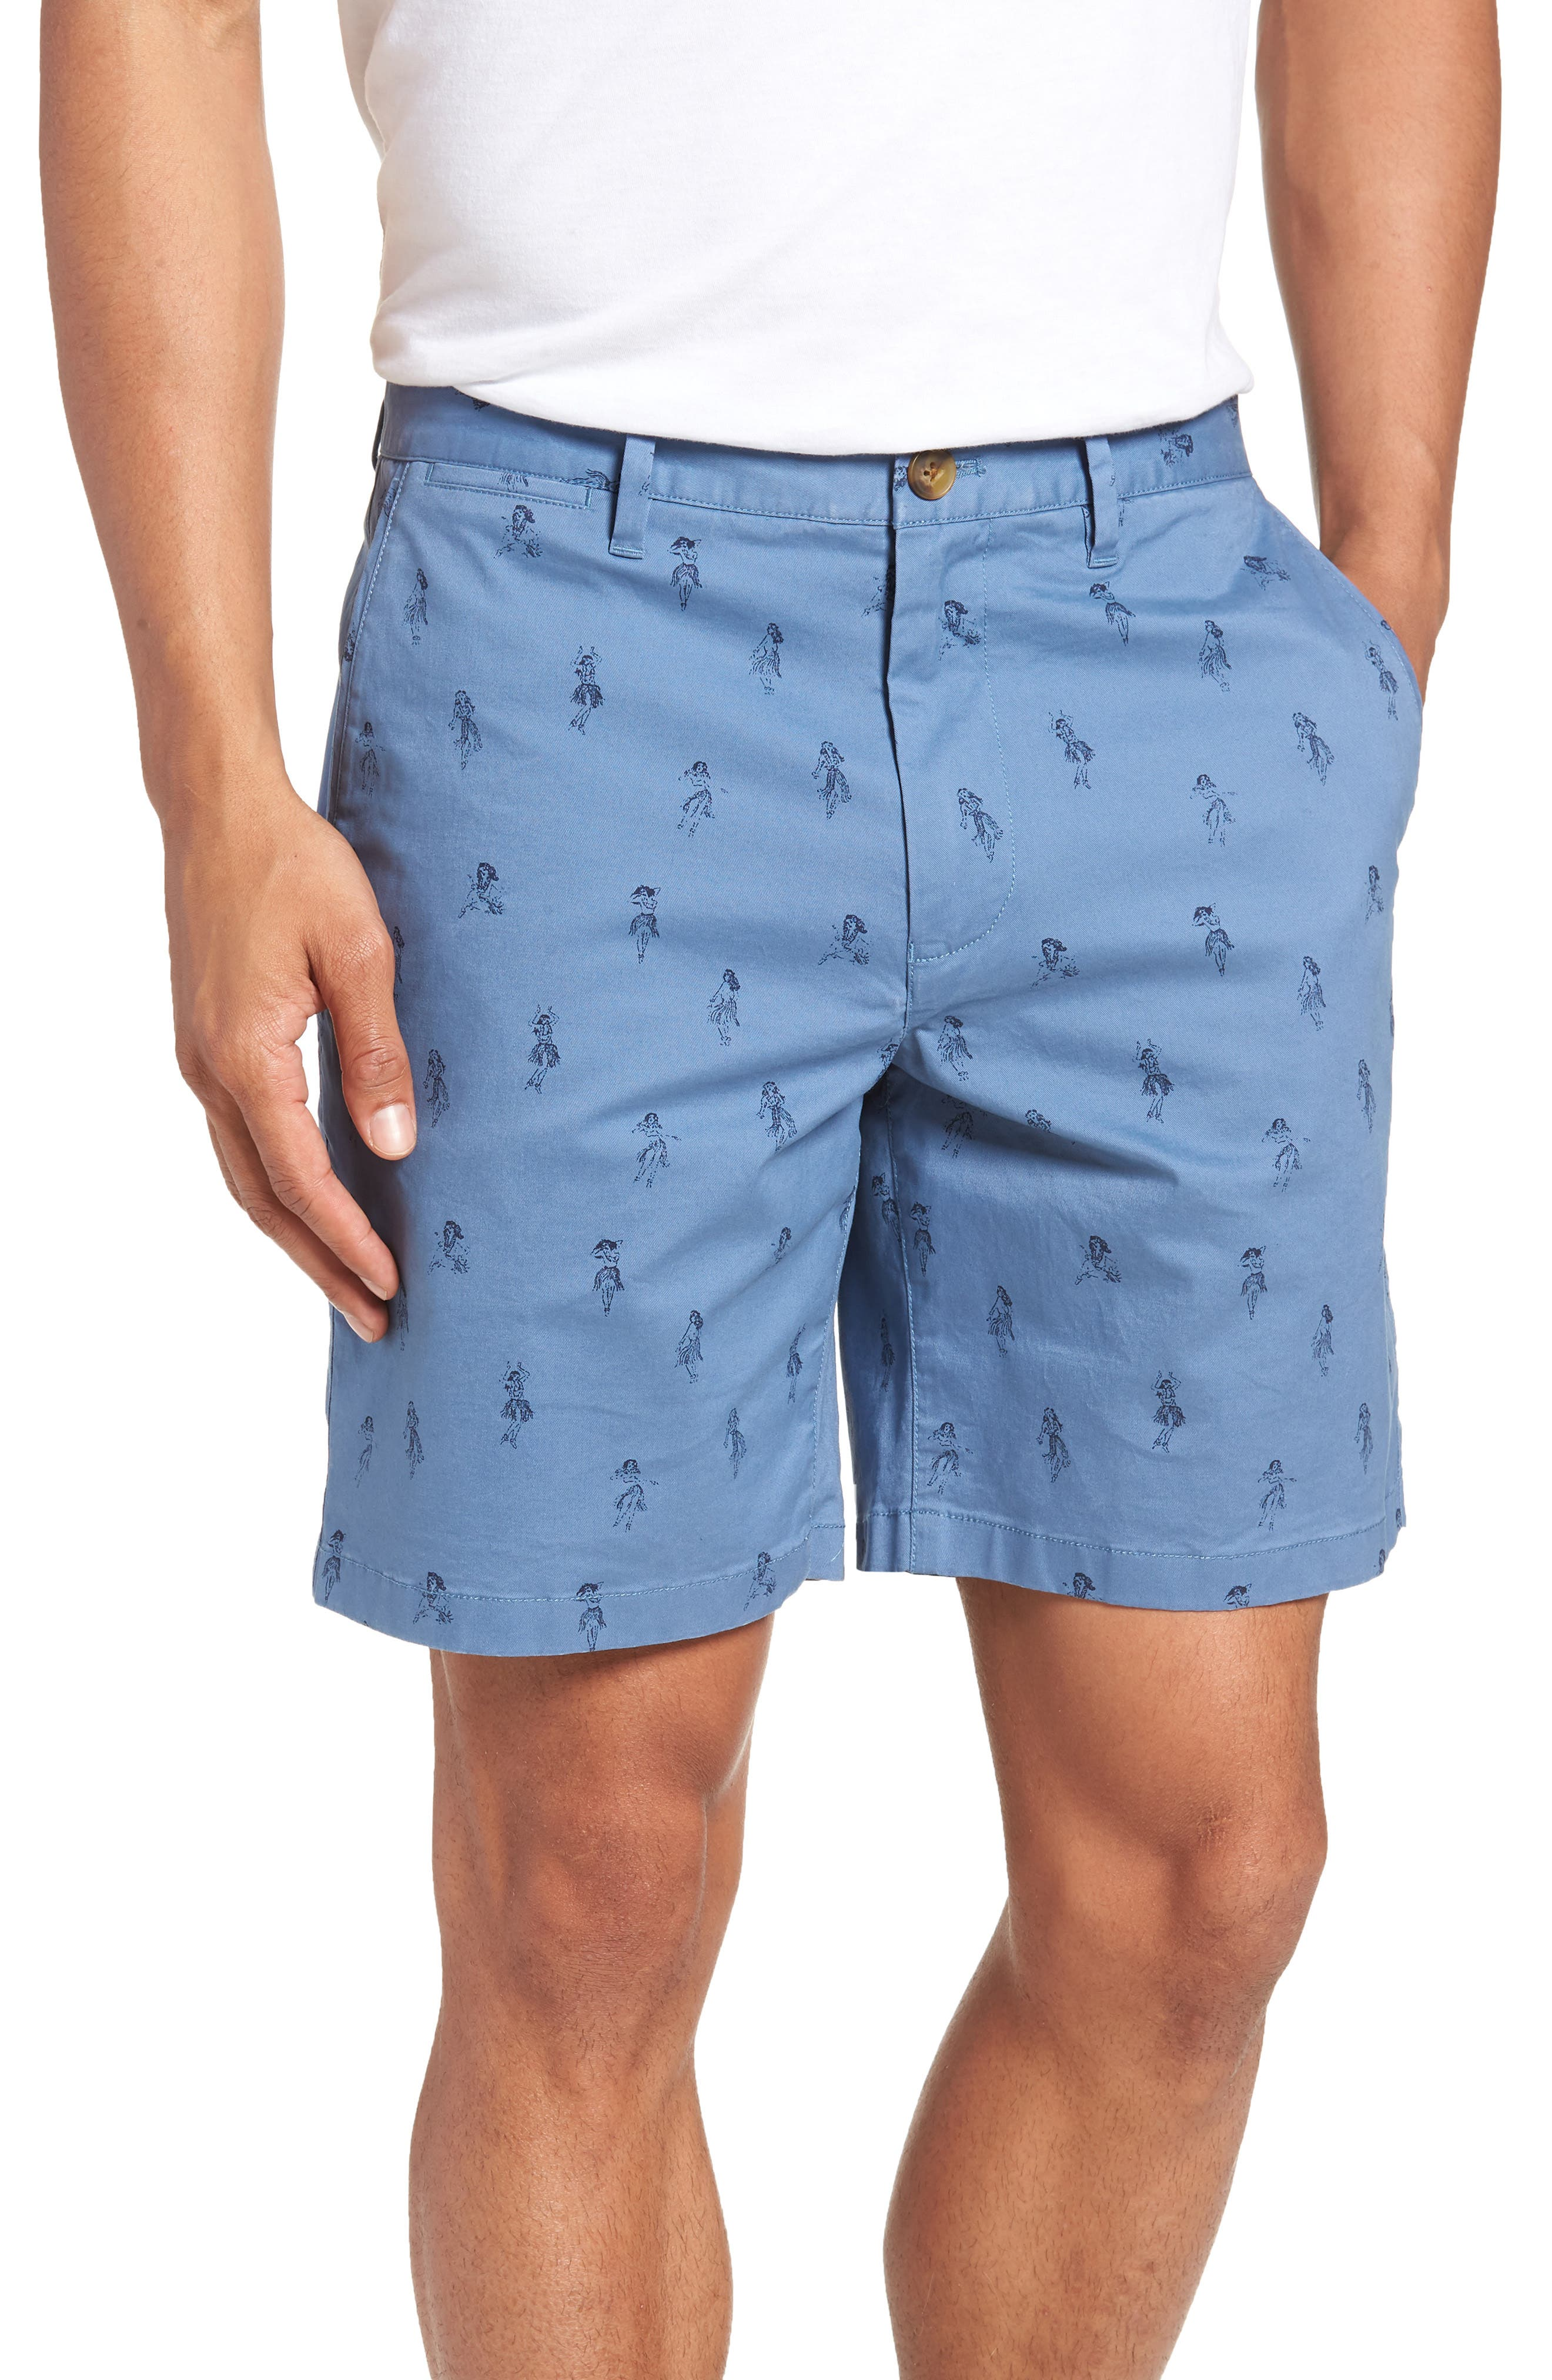 Bonobos 7-Inch Hula Print Stretch Lightweight Chino Shorts Get Authentic Sale Online Clearance Perfect Sale Limited Edition Cheap Get To Buy nxIbHt3Fmt